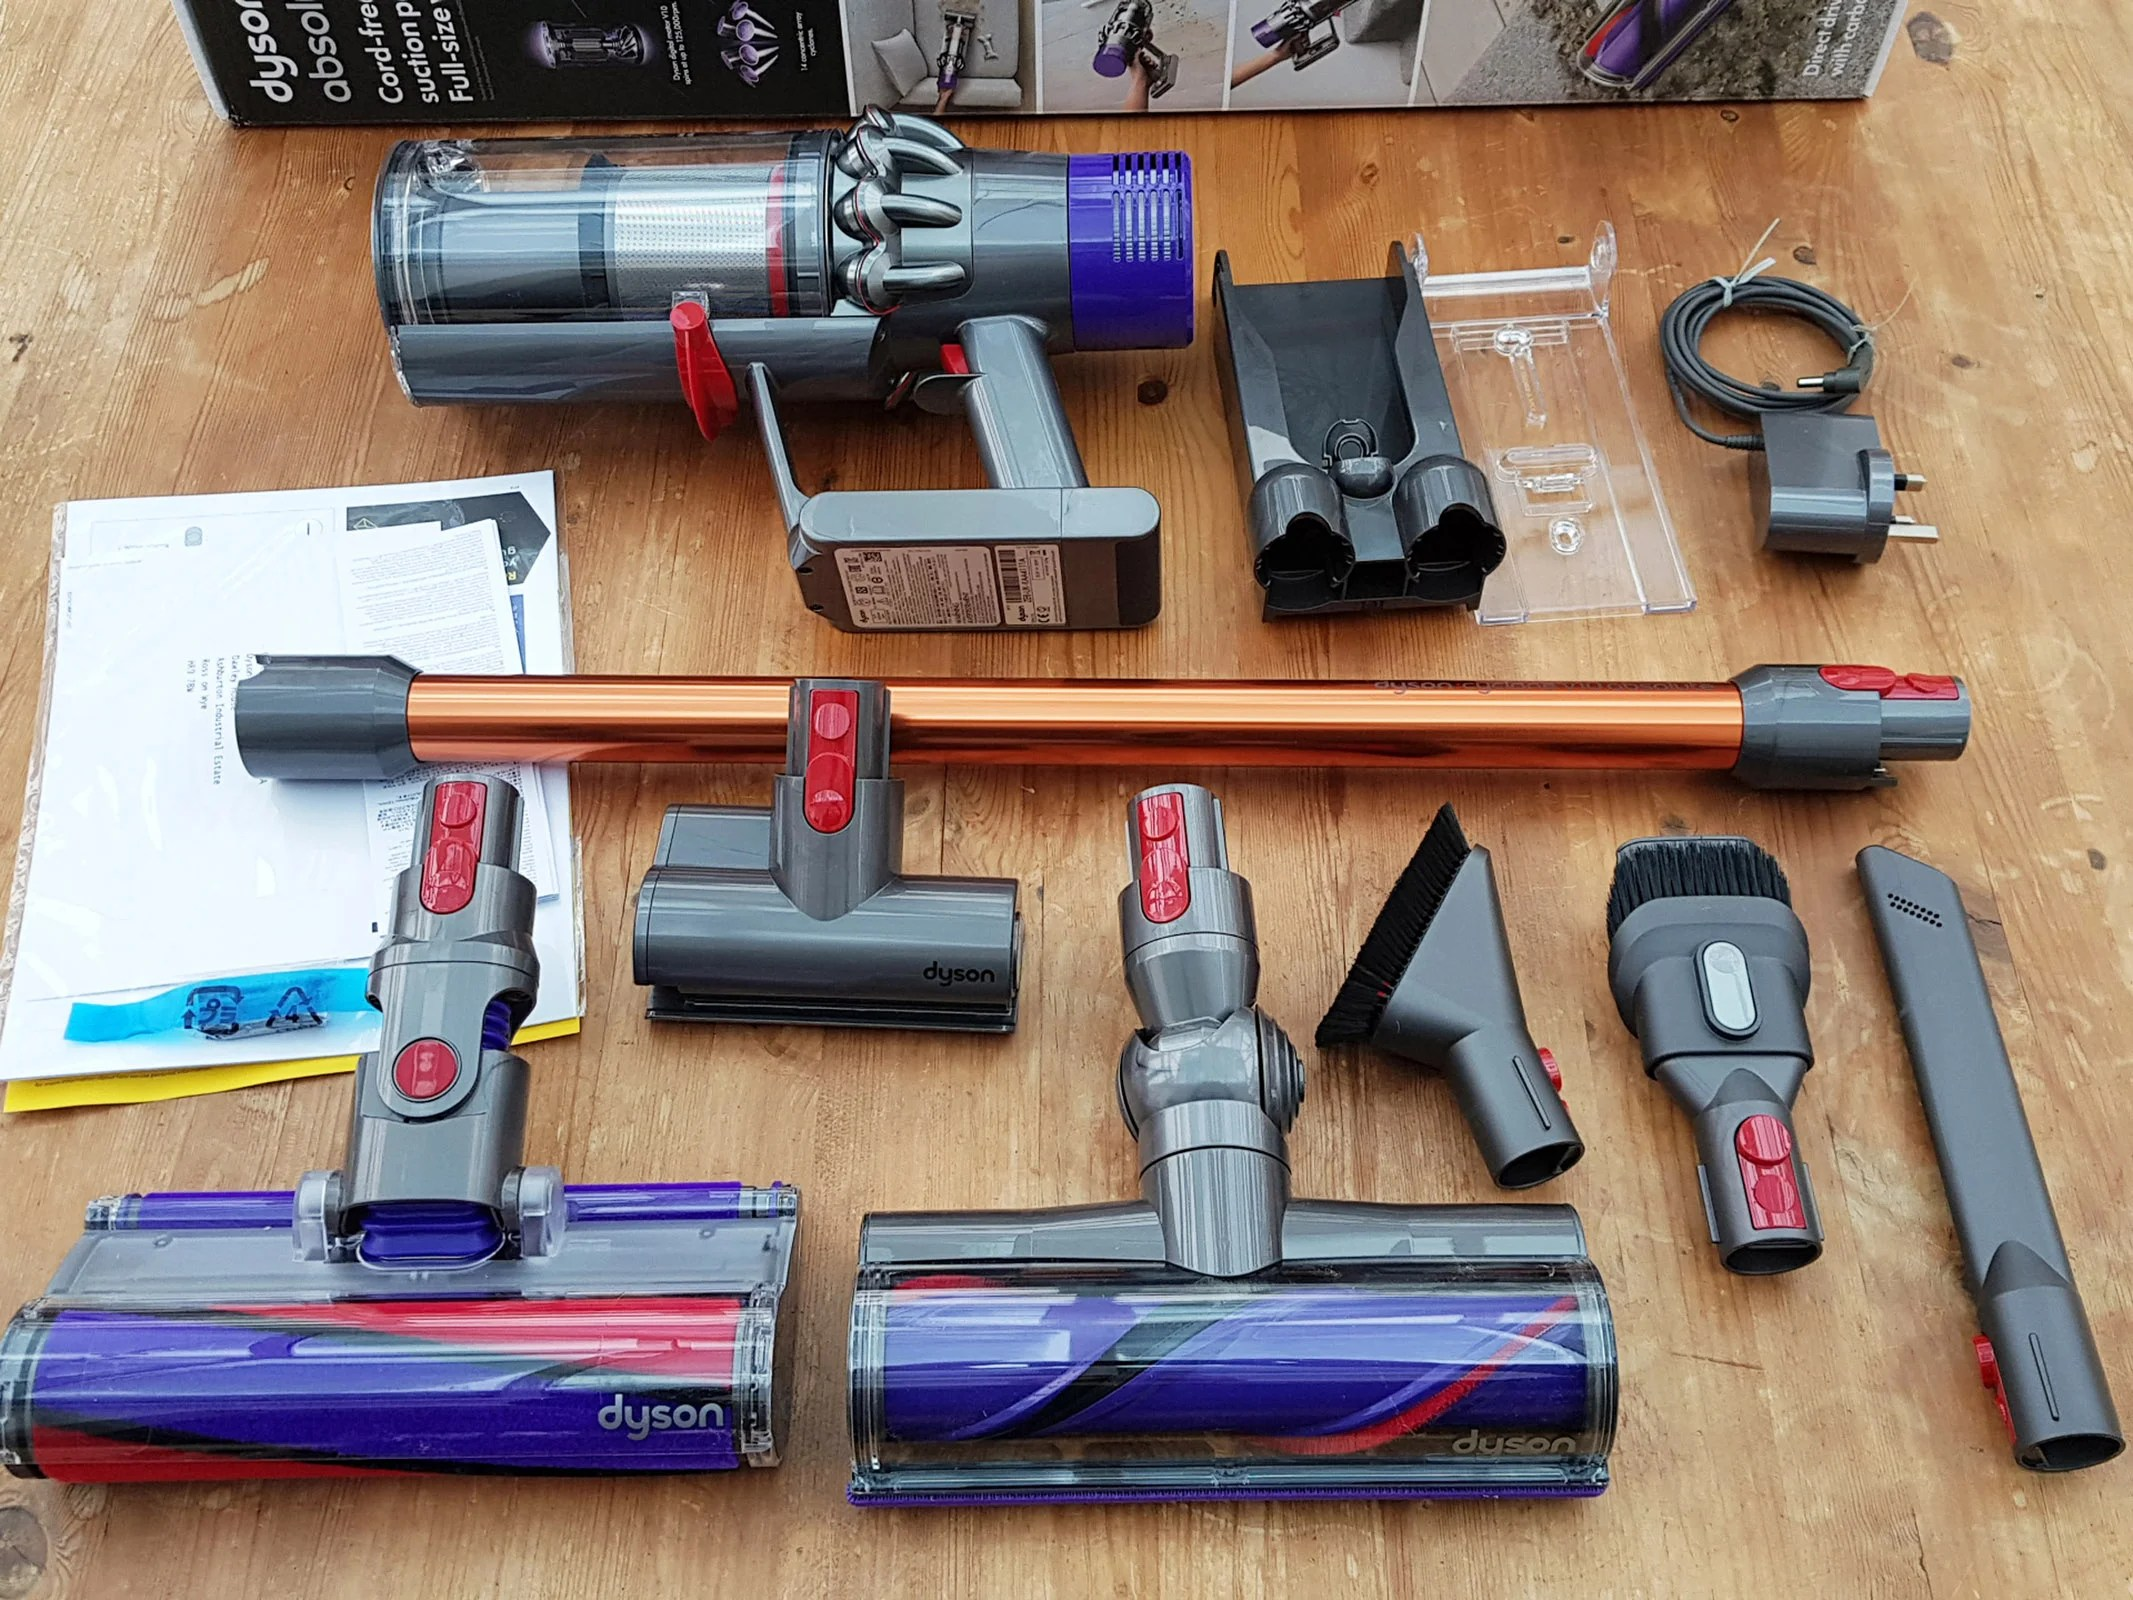 Dyson Cyclone V10 Absolute Review | Trusted Reviews